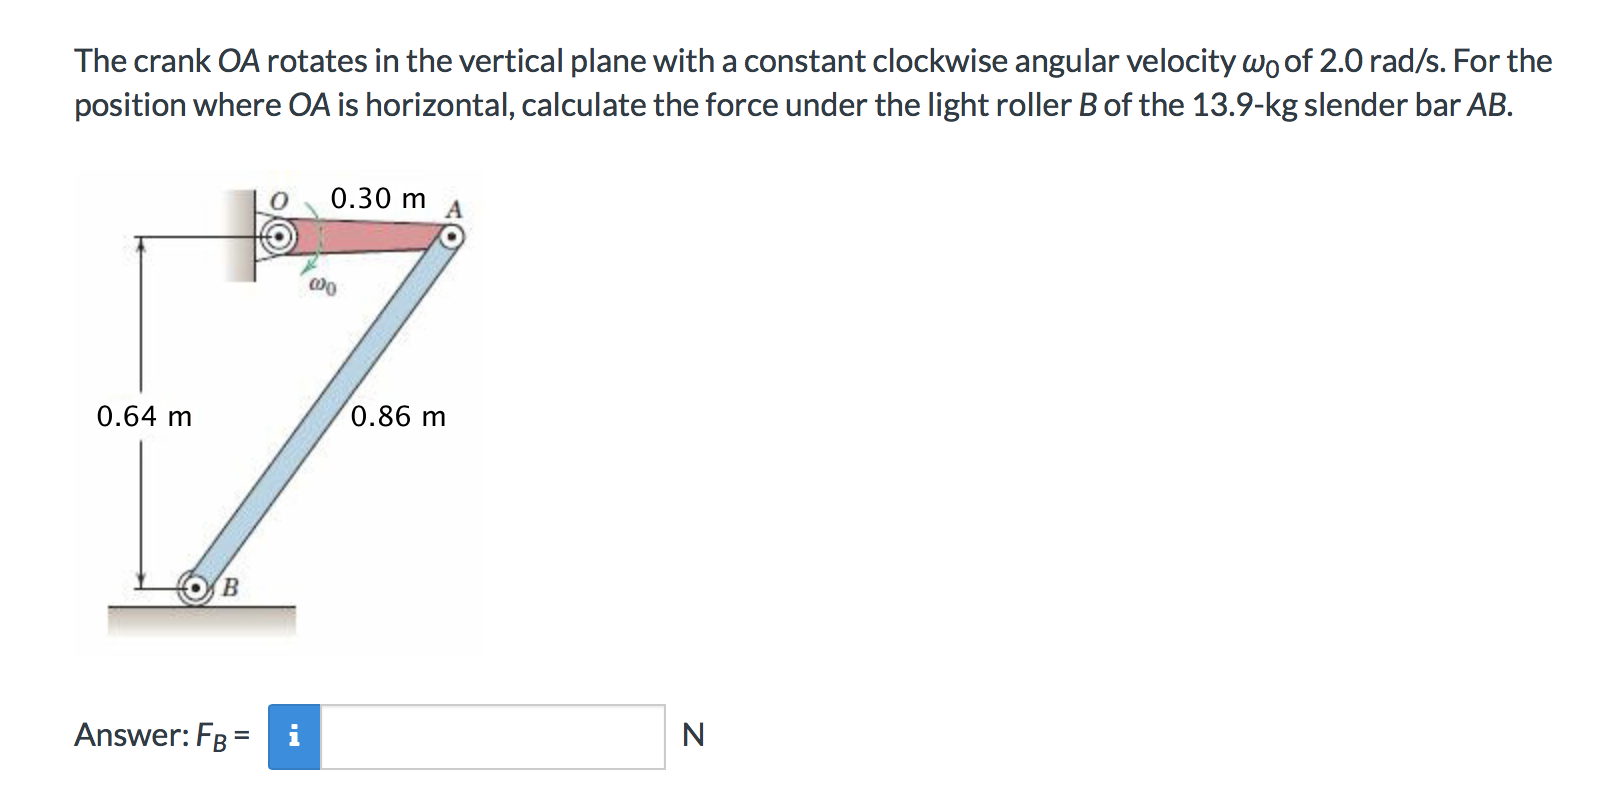 The crank OA rotates in the vertical plane with a constant clockwise angular velocity wo of 2.0 rad/s. For the position where OA is horizontal, calculate the force under the light roller B of the 13.9-kg slender bar AB. 0.30 m 0.86 m 0.64 m Answer: FB N i